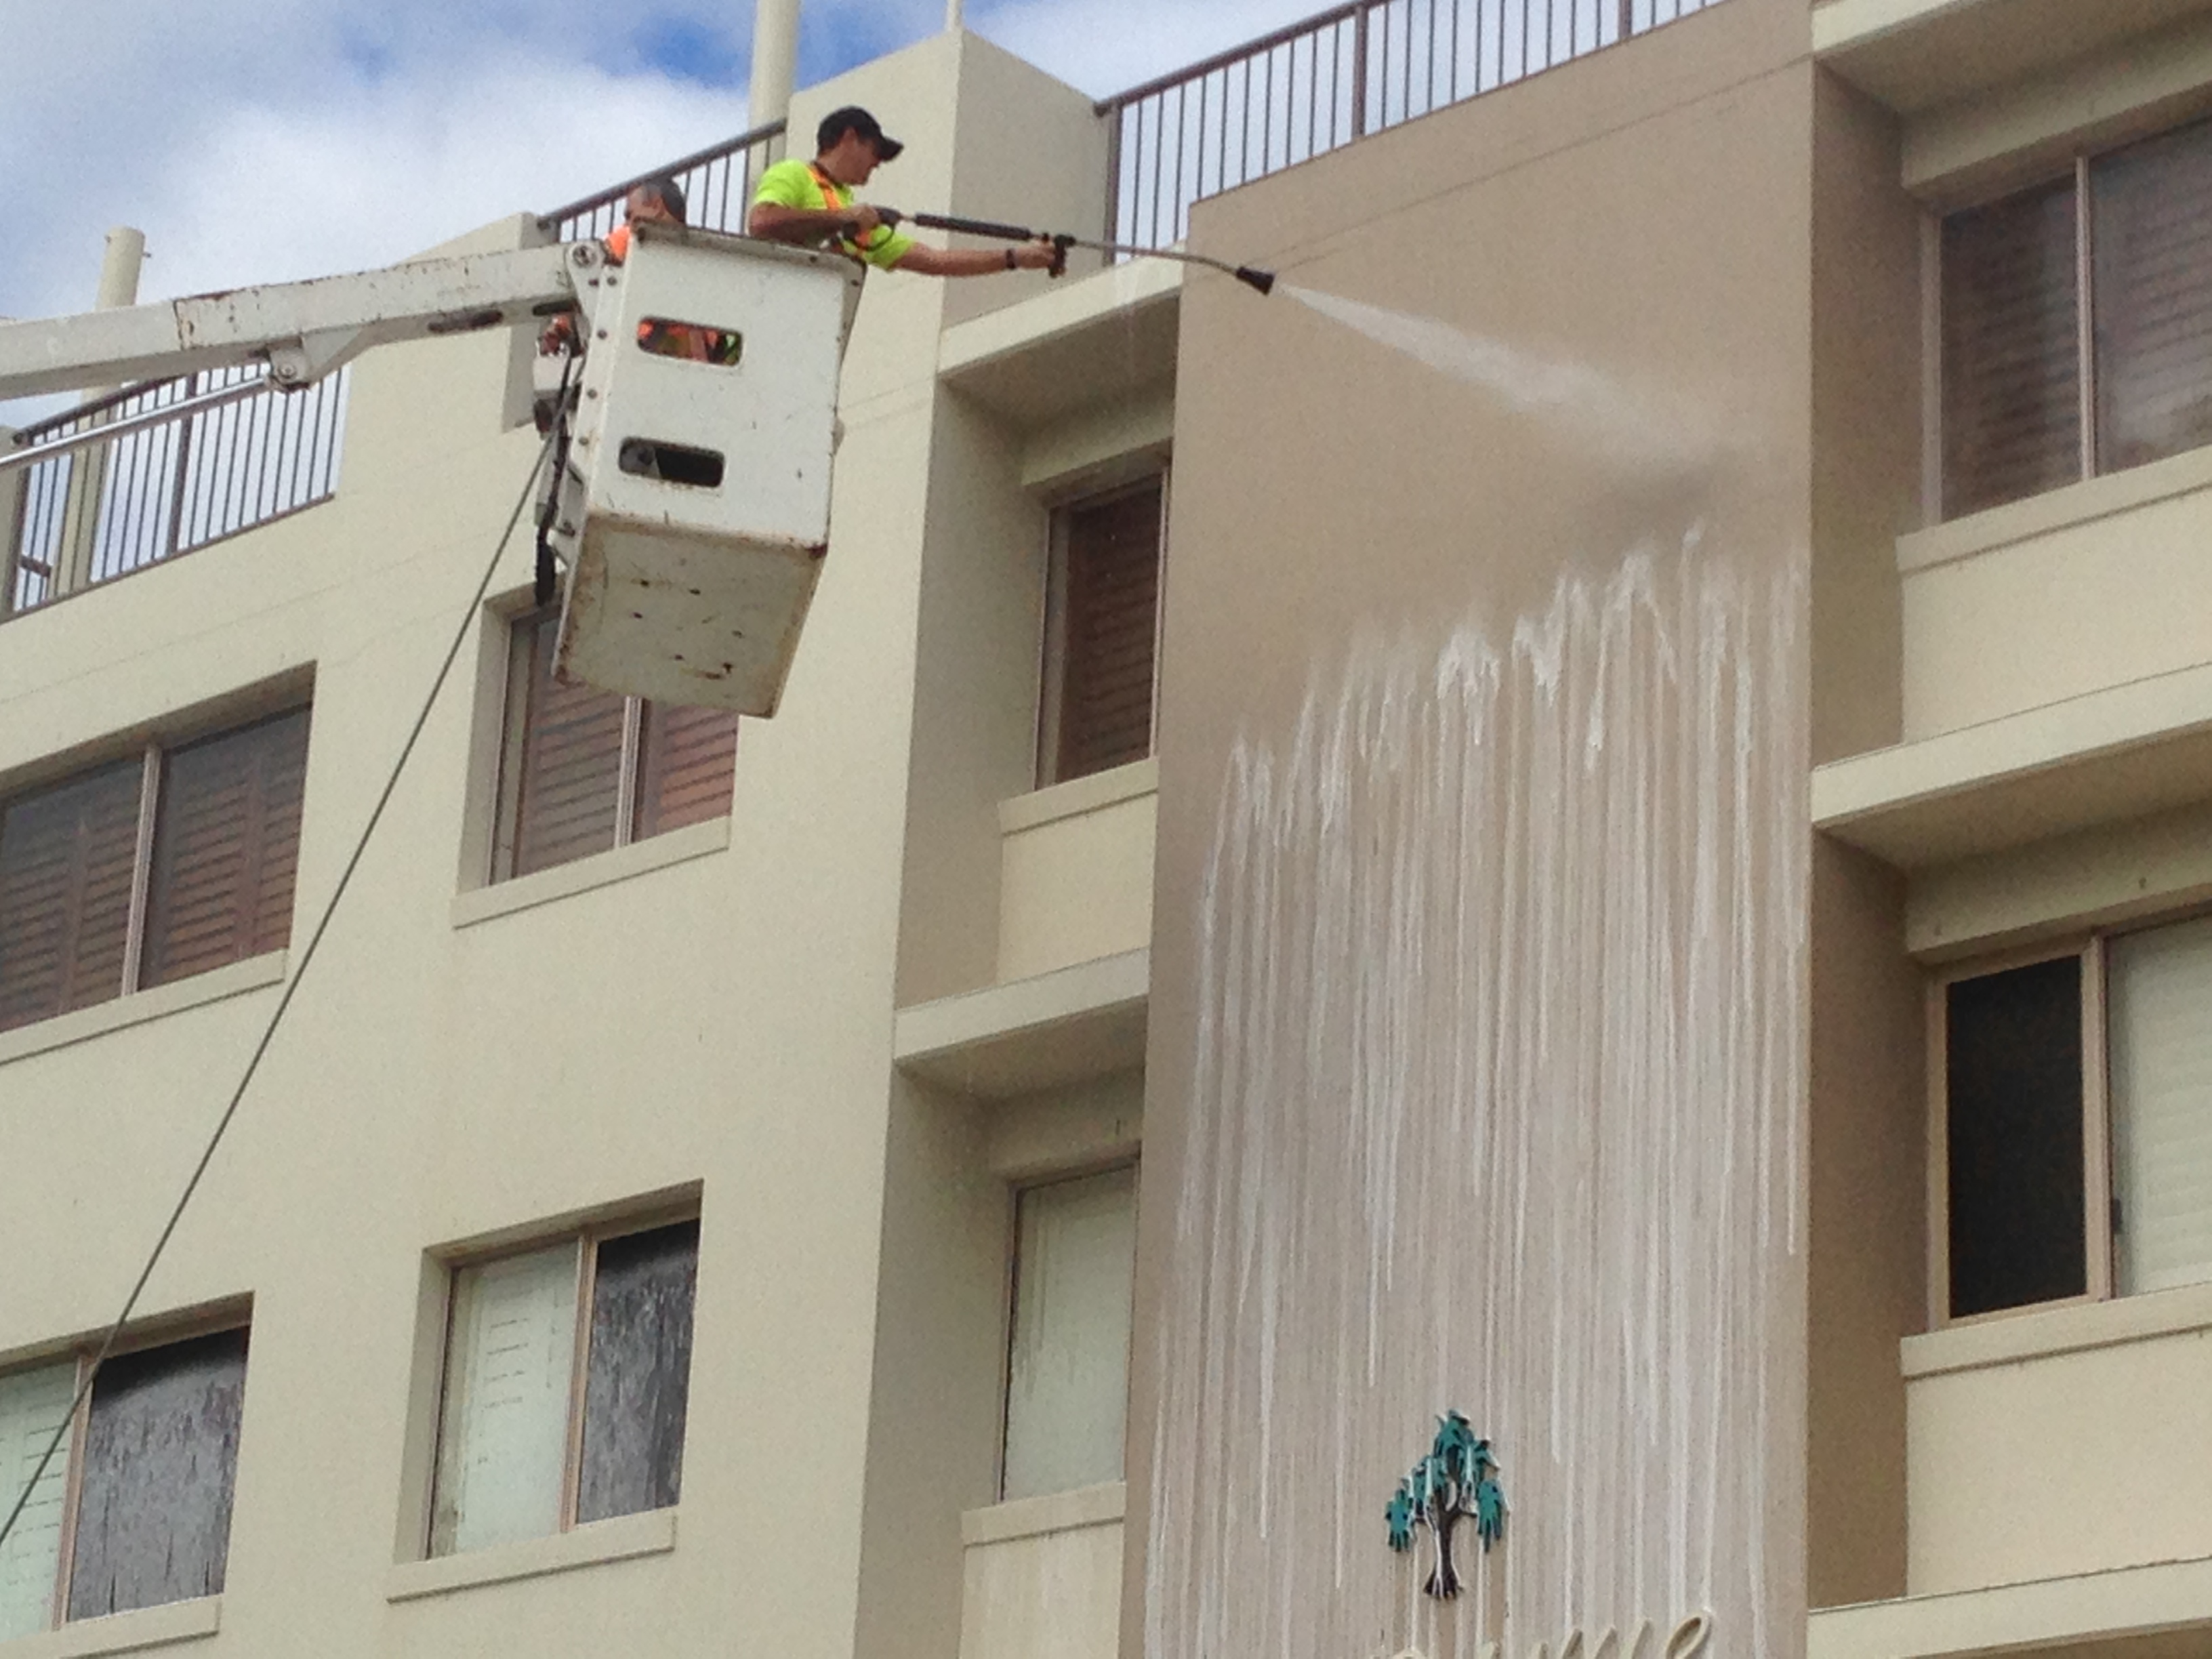 Apartment block wash downs.